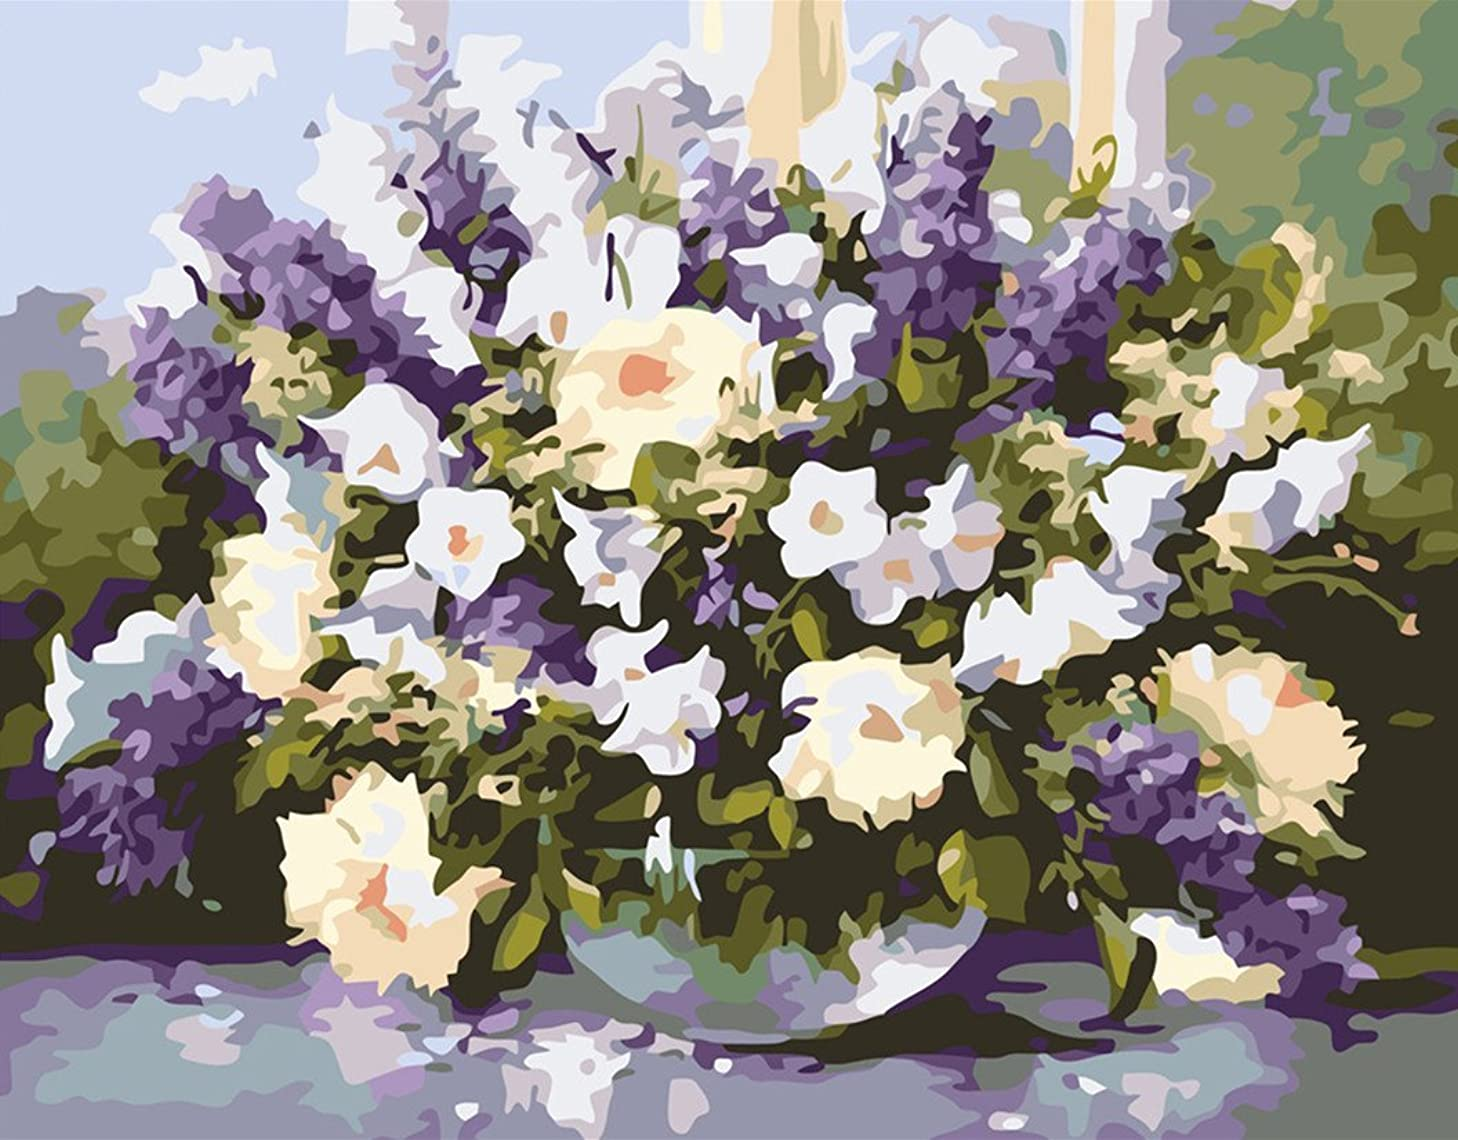 CaptainCrafts New Paint by Number Kits - Purple Vase Flowers 16x20 inch Frameless - Diy Painting by Numbers for Adults Beginner Kids